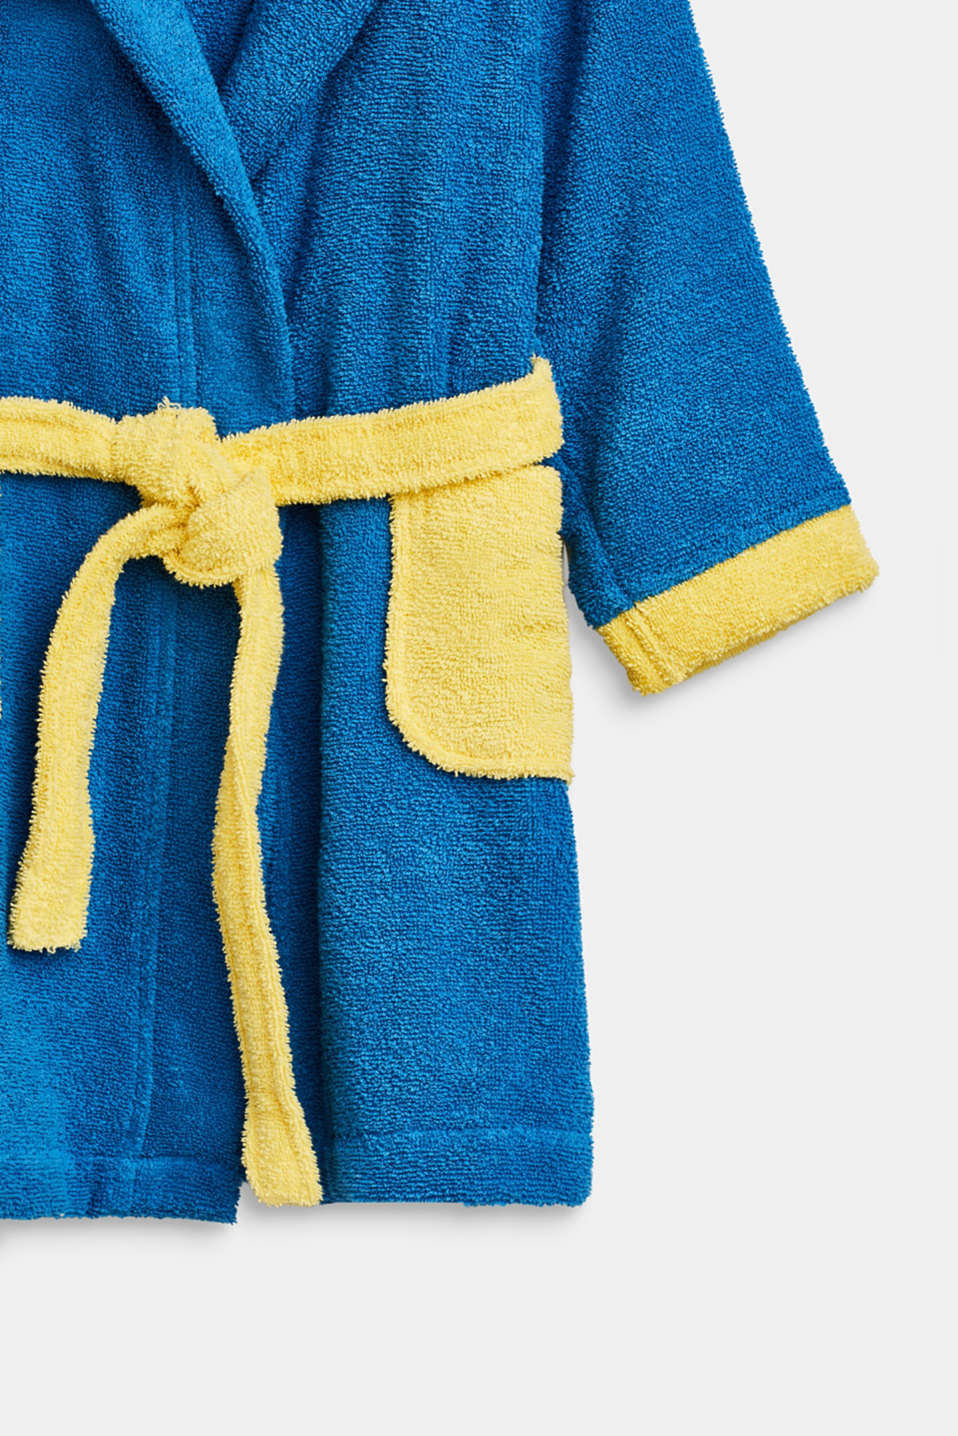 Children's bathrobe in 100% cotton, BLUE/YELLOW, detail image number 2